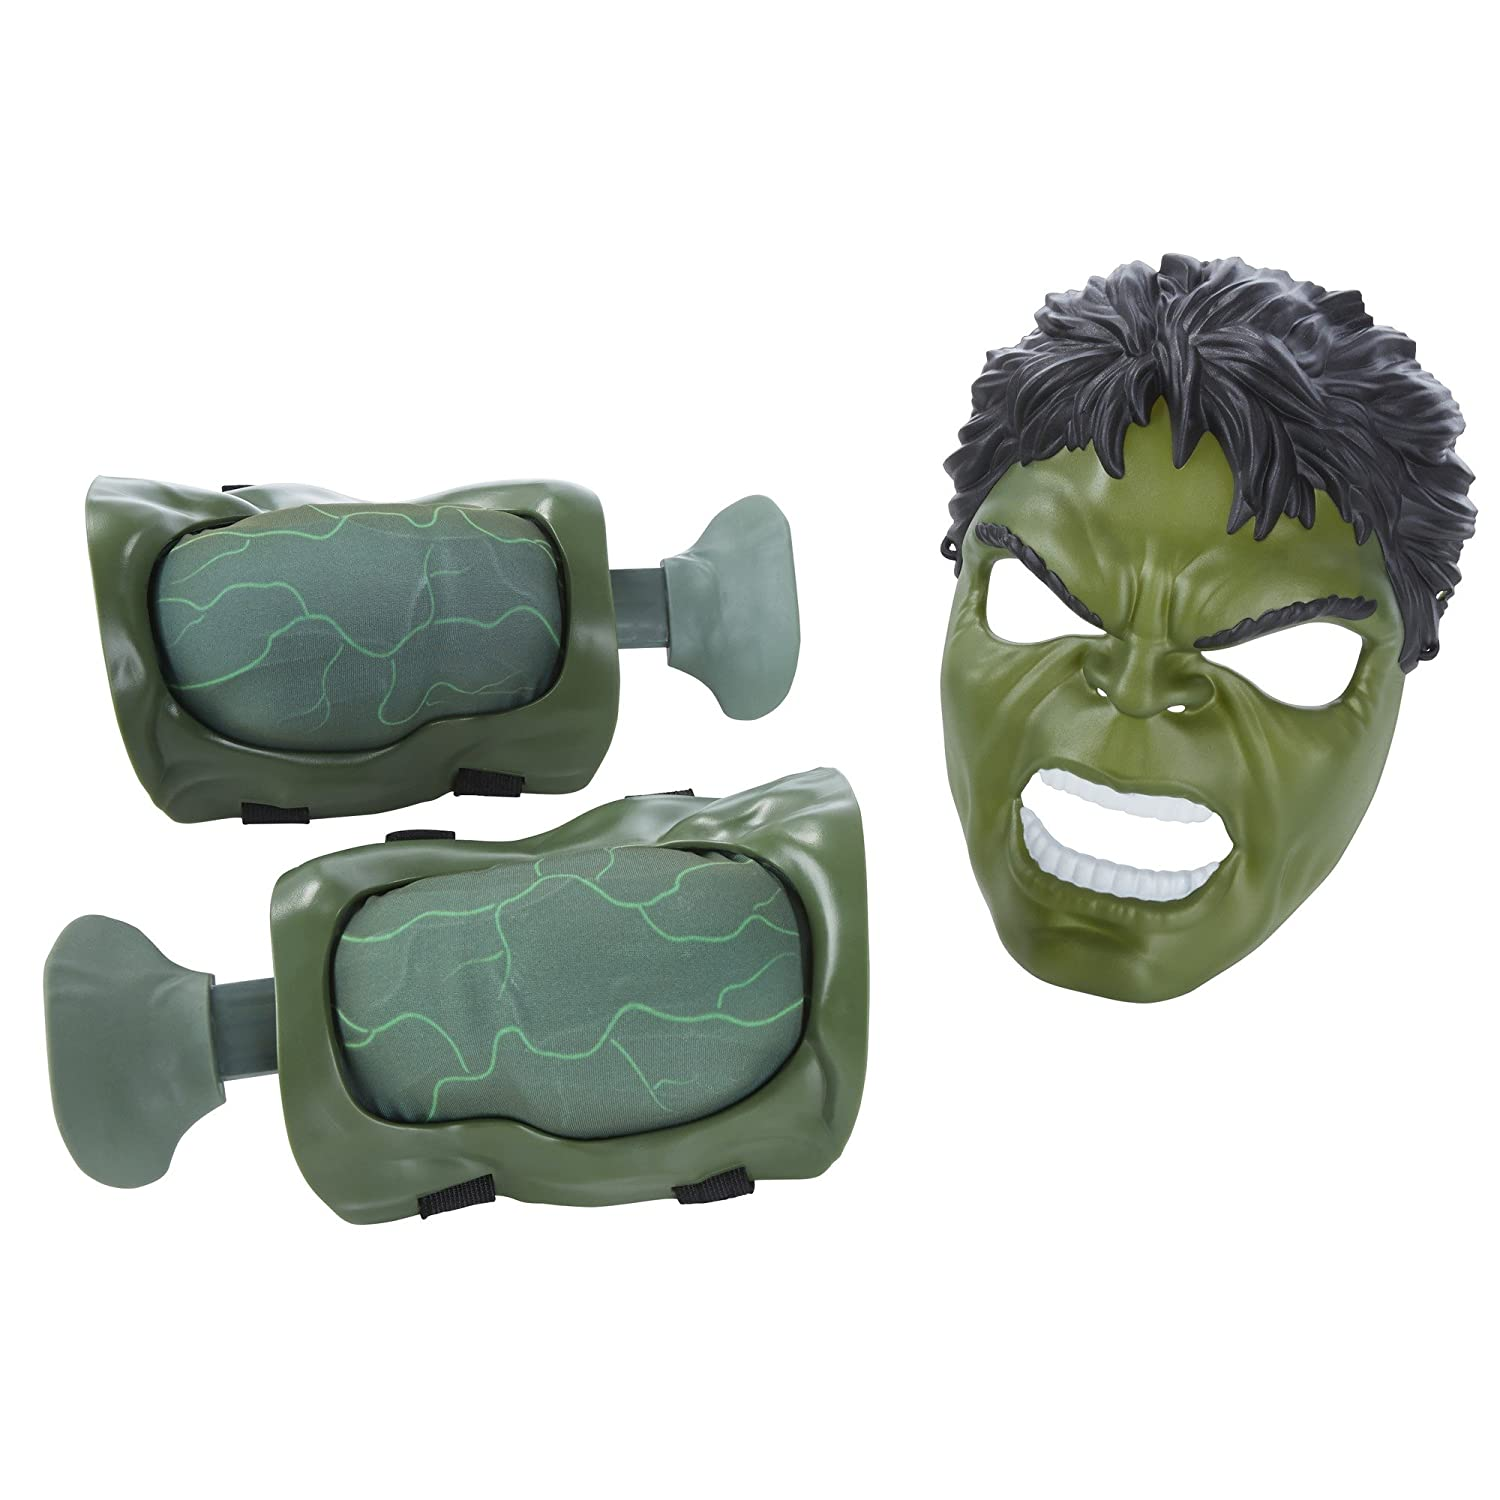 Amazon.com: Marvel Avengers Age Of Ultron Hulk Muscles And Mask: Toys & Games